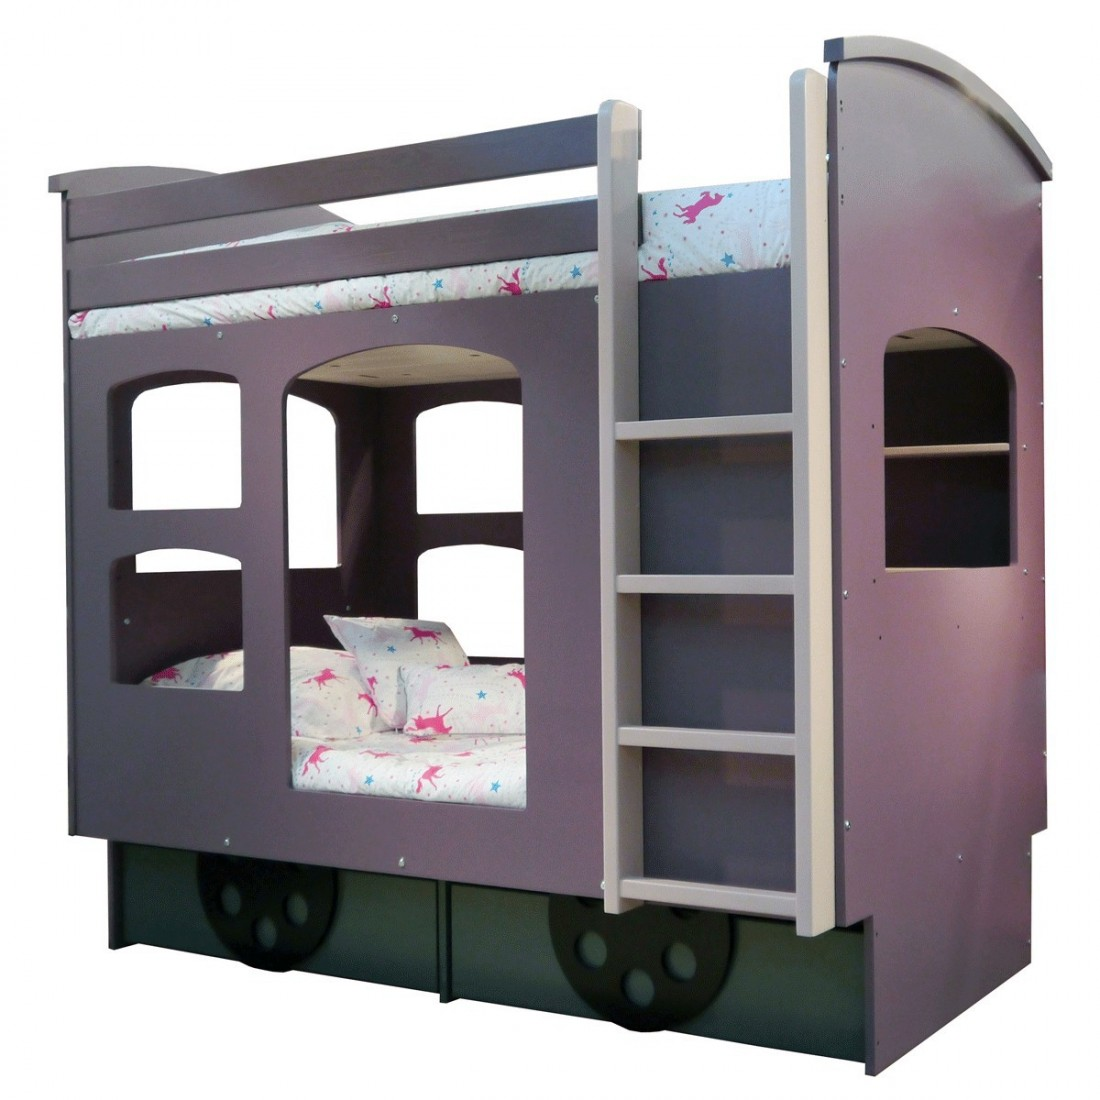 lit superpos cabane train wagon couleurs au choix ma chambramoi. Black Bedroom Furniture Sets. Home Design Ideas